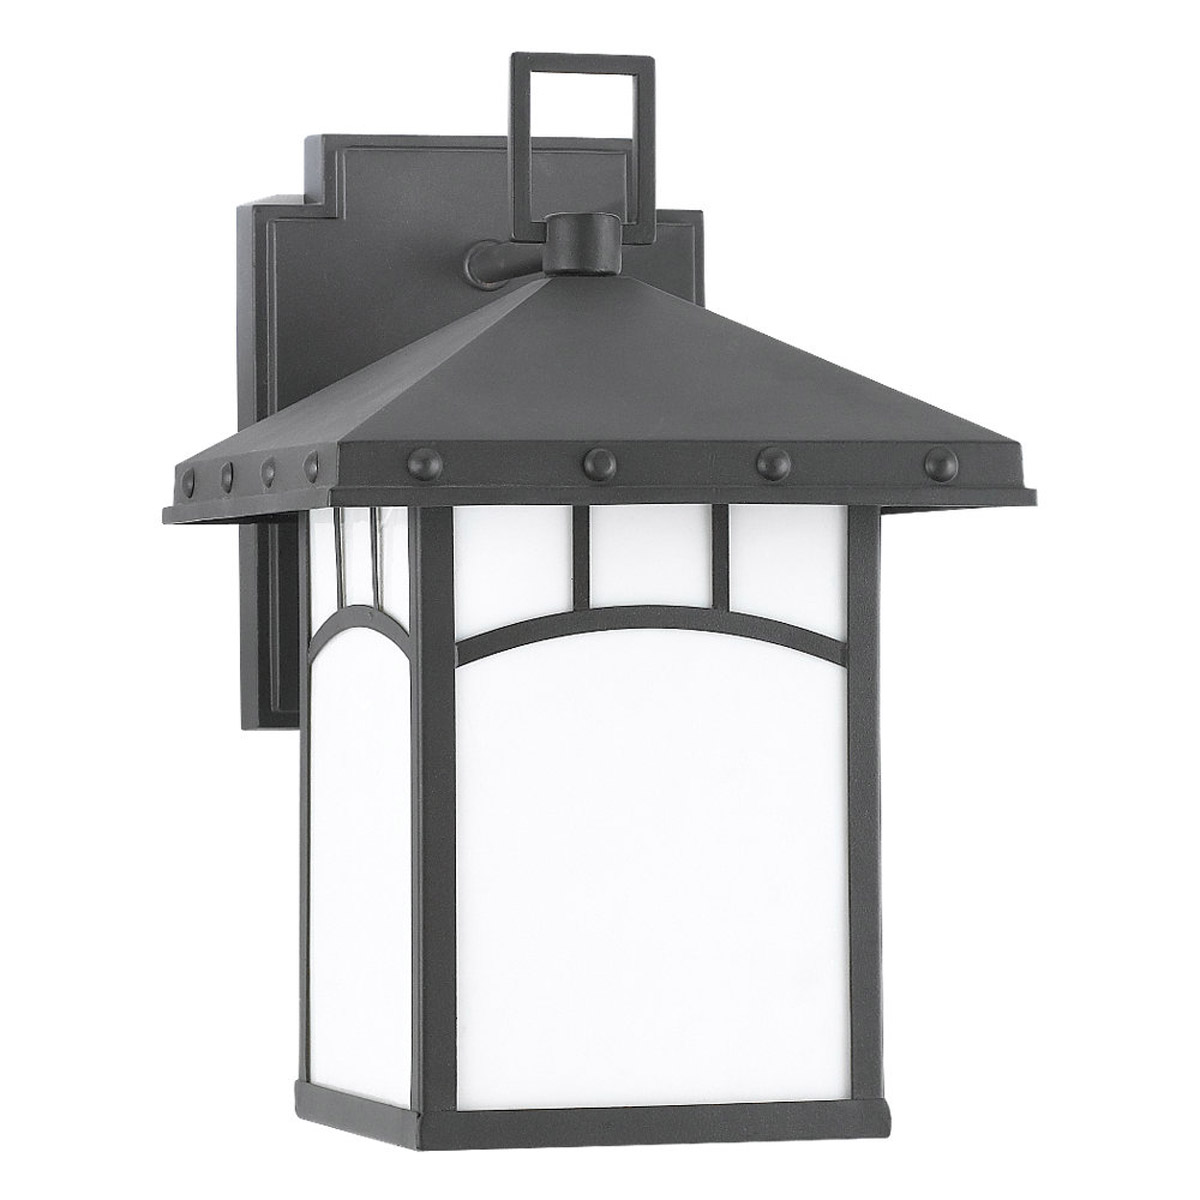 Sea Gull Lighting Ashville 1 Light Outdoor Wall Lantern in Cottage Bronze 88230D-833 photo